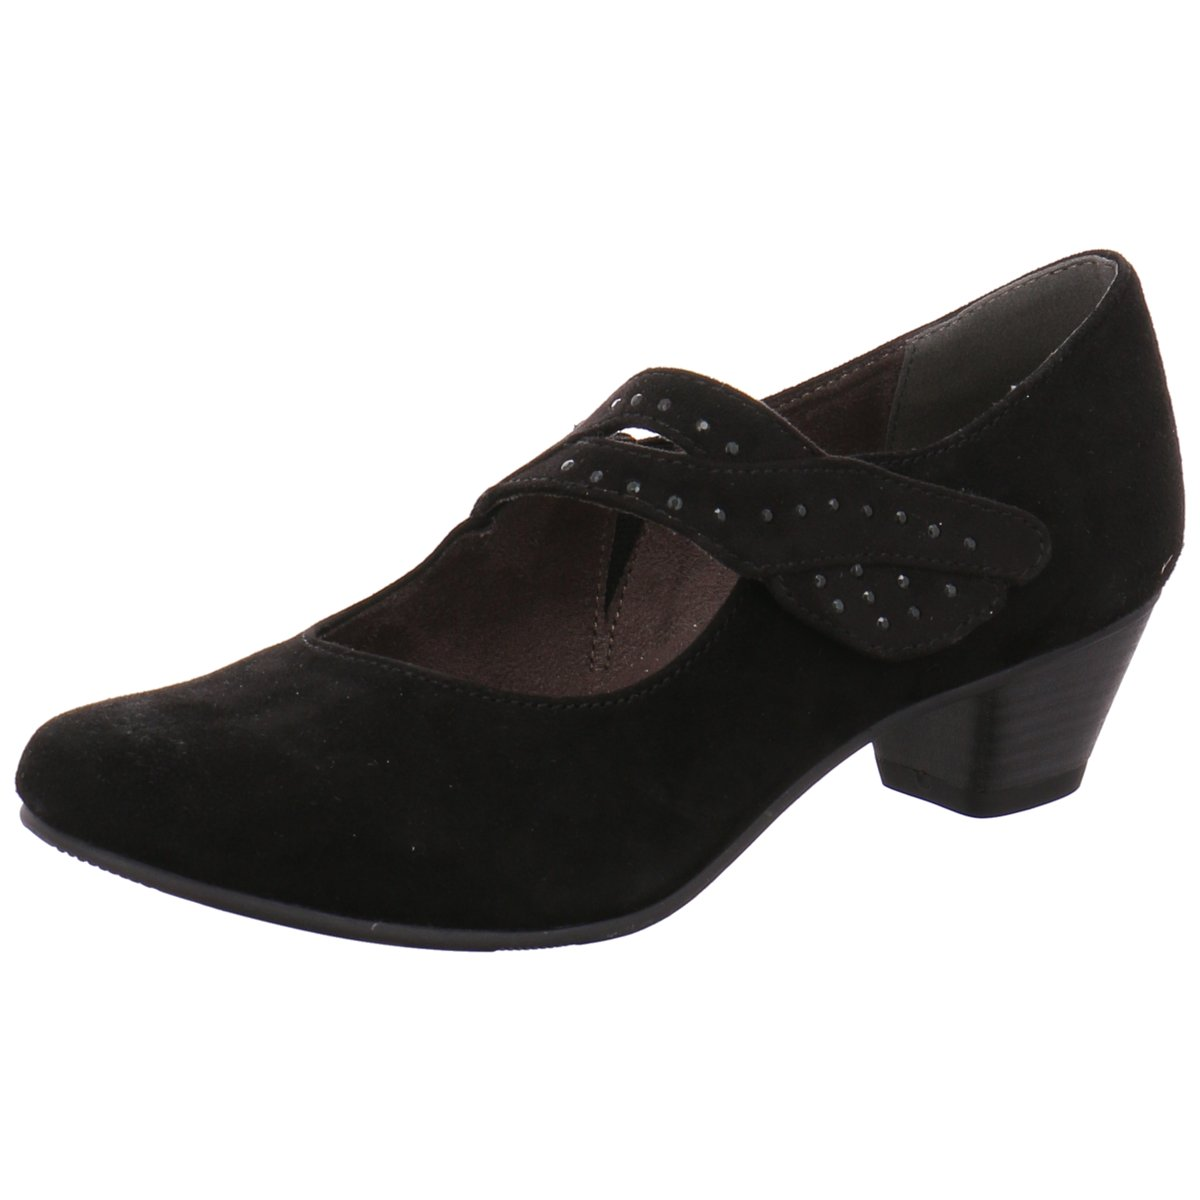 NEU Soft Line Damen Pumps Da.-Slipper 8-8-24303-29/001-001 schwarz 317173